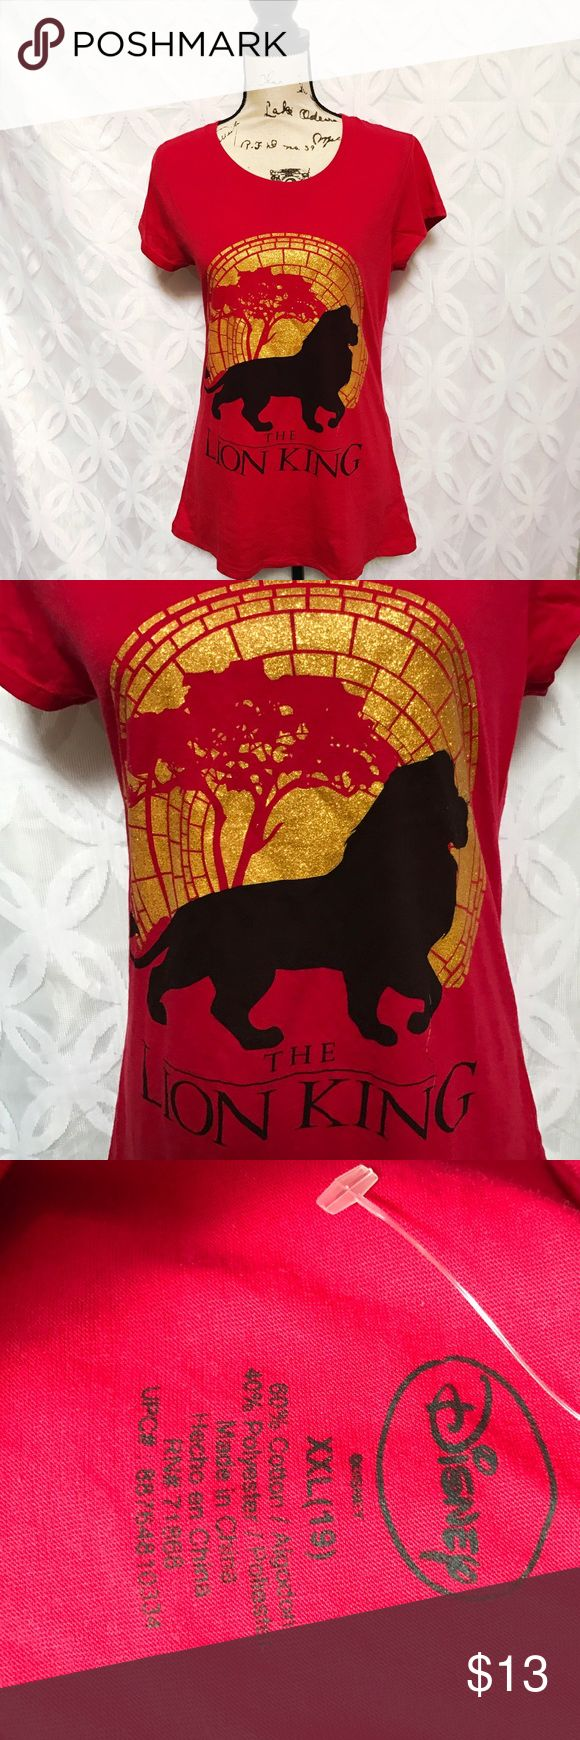 """Disney The Lion King Sunset Mufasa  Glitter Tee Disney The Lion King Sunset Mufasa Gold Glitter Tee NWOT.  Measurements Laying Flat Size 🔹XXL Armpit to Armpit 🔹19 Shoulder to Hem 🔹28"""" Bundle to Save 🤓 Sorry NO outside transactions 🚫 NO trades 🚫 Happy Poshing 🦋 Offers welcomed 👍 NO Low balling 👎👎 All items from a pet 😼and Smoke Free Home Disney Tops Tees - Short Sleeve"""